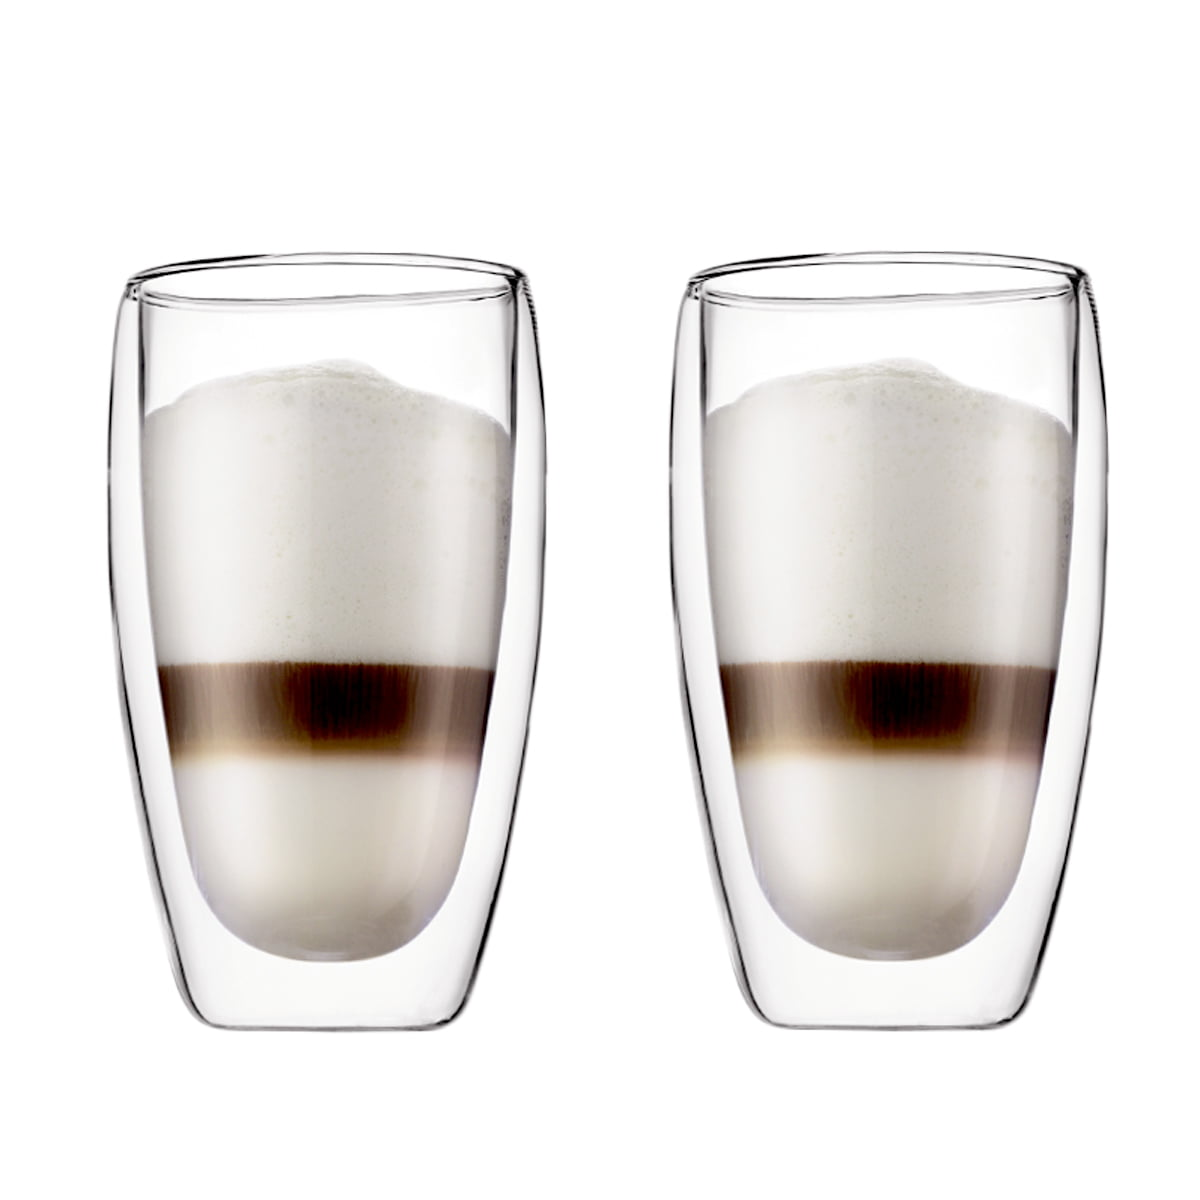 pavina latte macchiato glas bodum shop. Black Bedroom Furniture Sets. Home Design Ideas